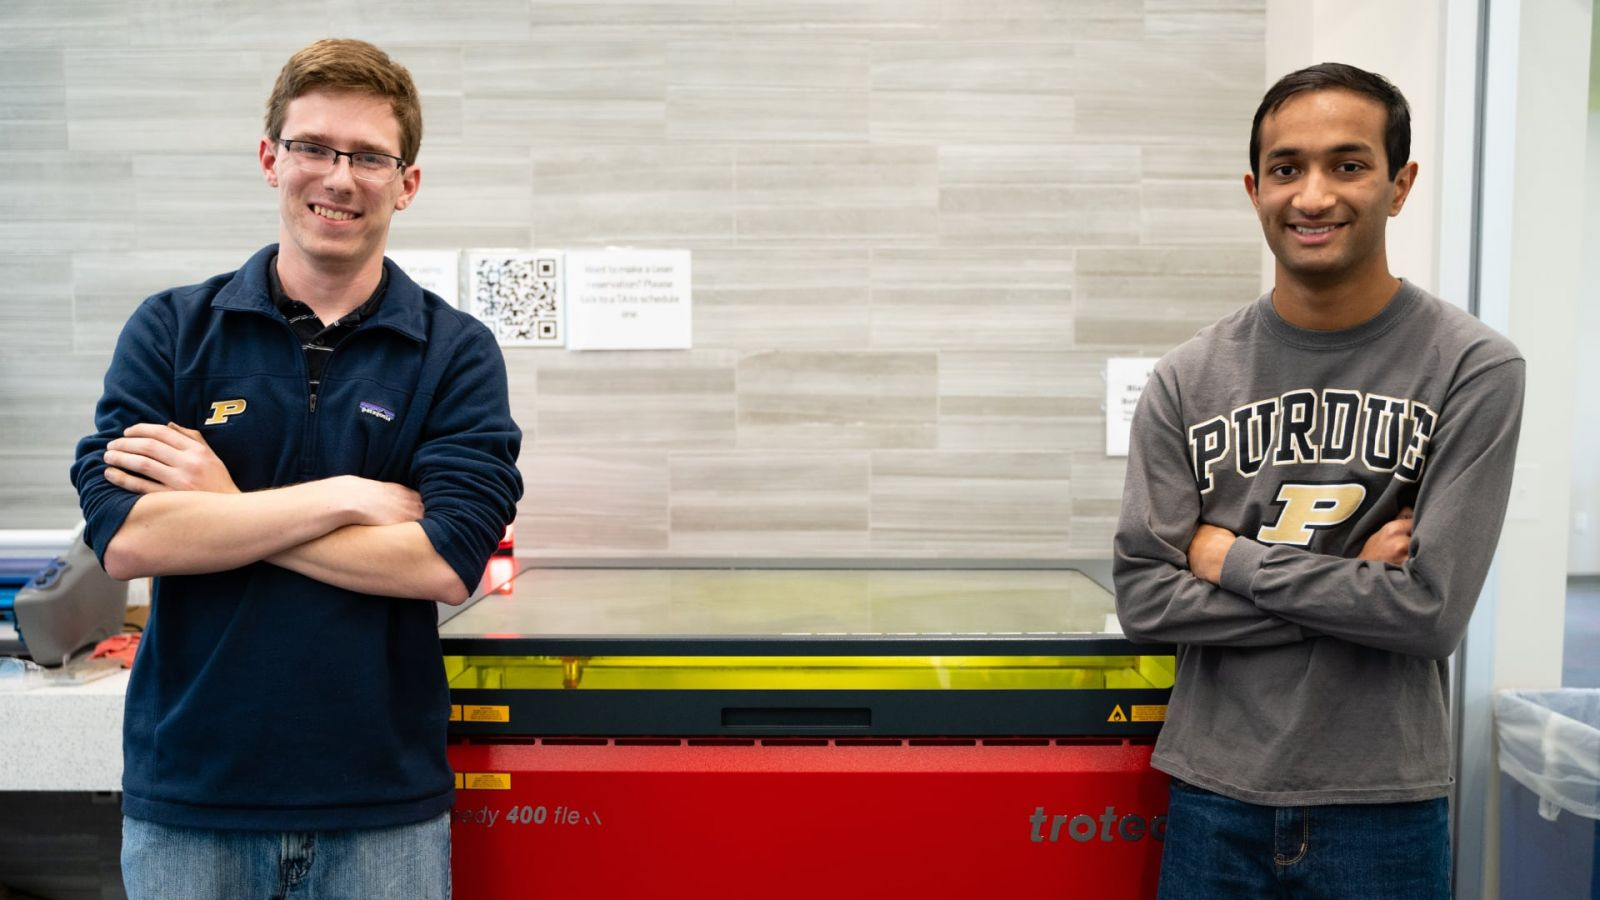 Purdue University students Matthew Fitzgerald and Shiv Patel stand before a laser engraver at the Bechtel Innovation Design Center. The students engraved 36 bookends to commemorate the historic Lafayette Street Railway. (Nick Wang/Purdue Foundry)